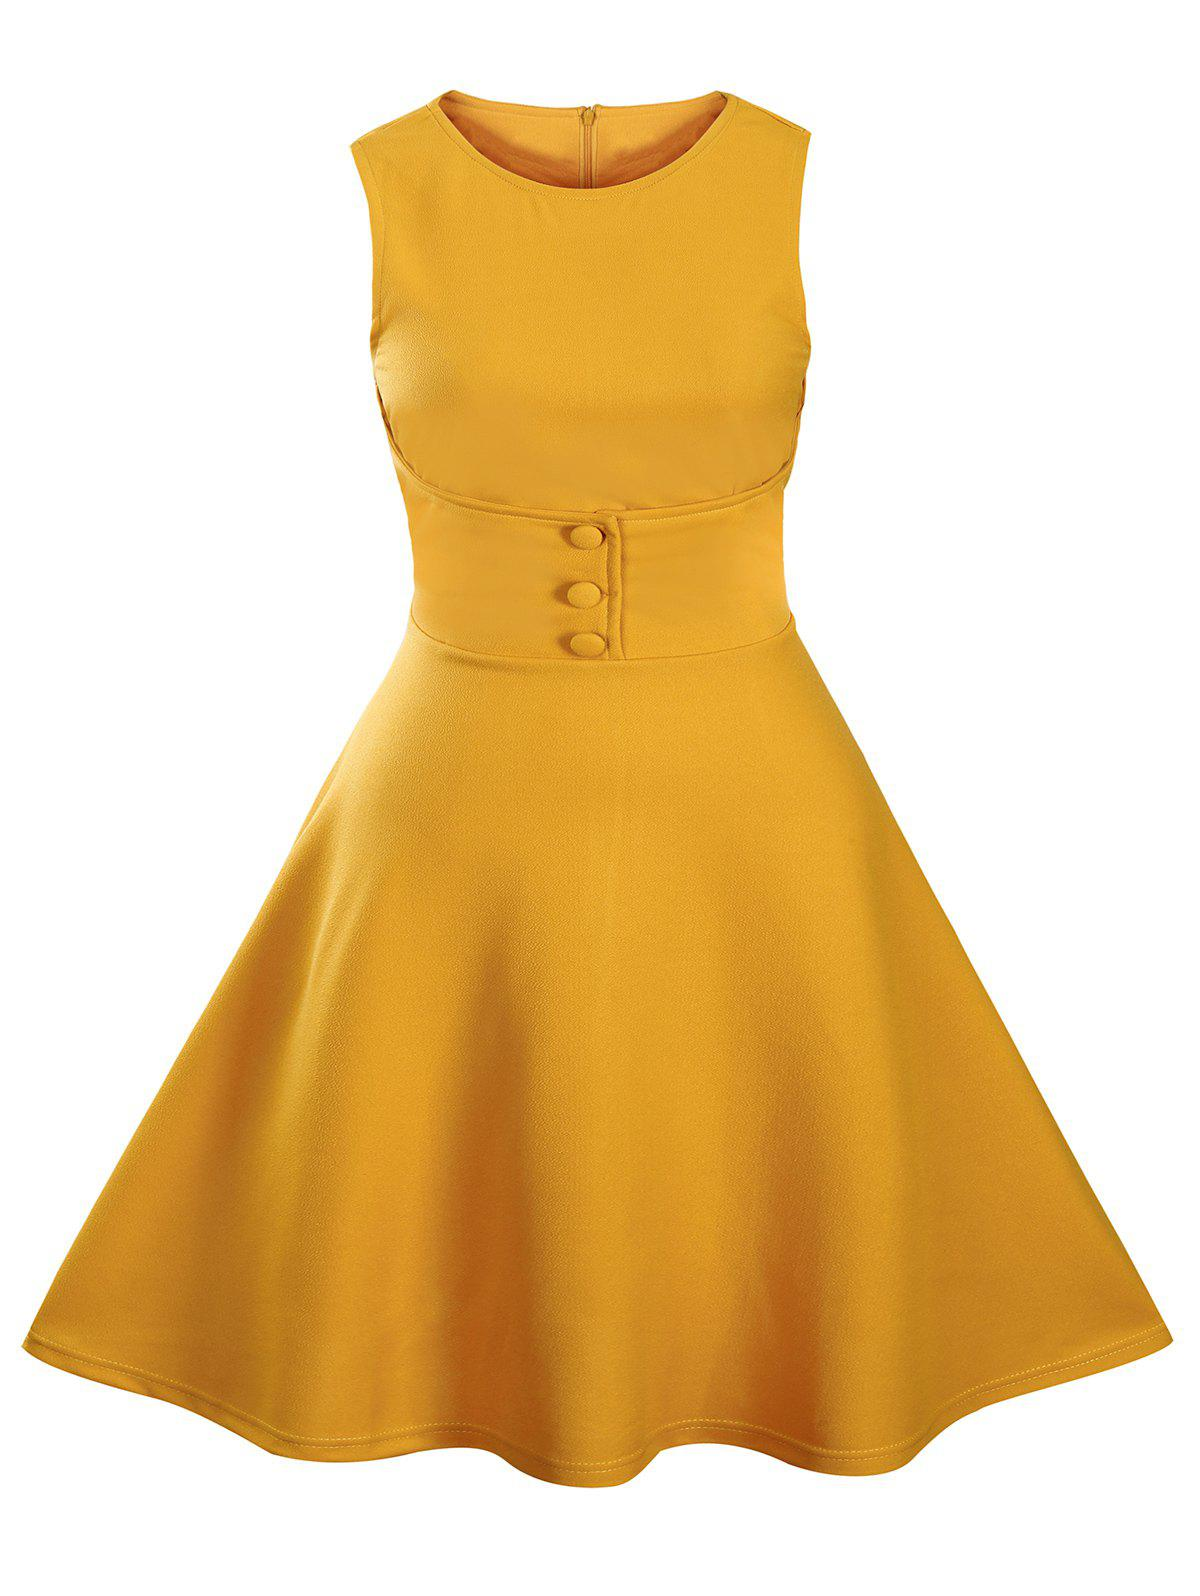 Buttoned Sleeveless Knee Length Swing Vintage Dress - YELLOW S